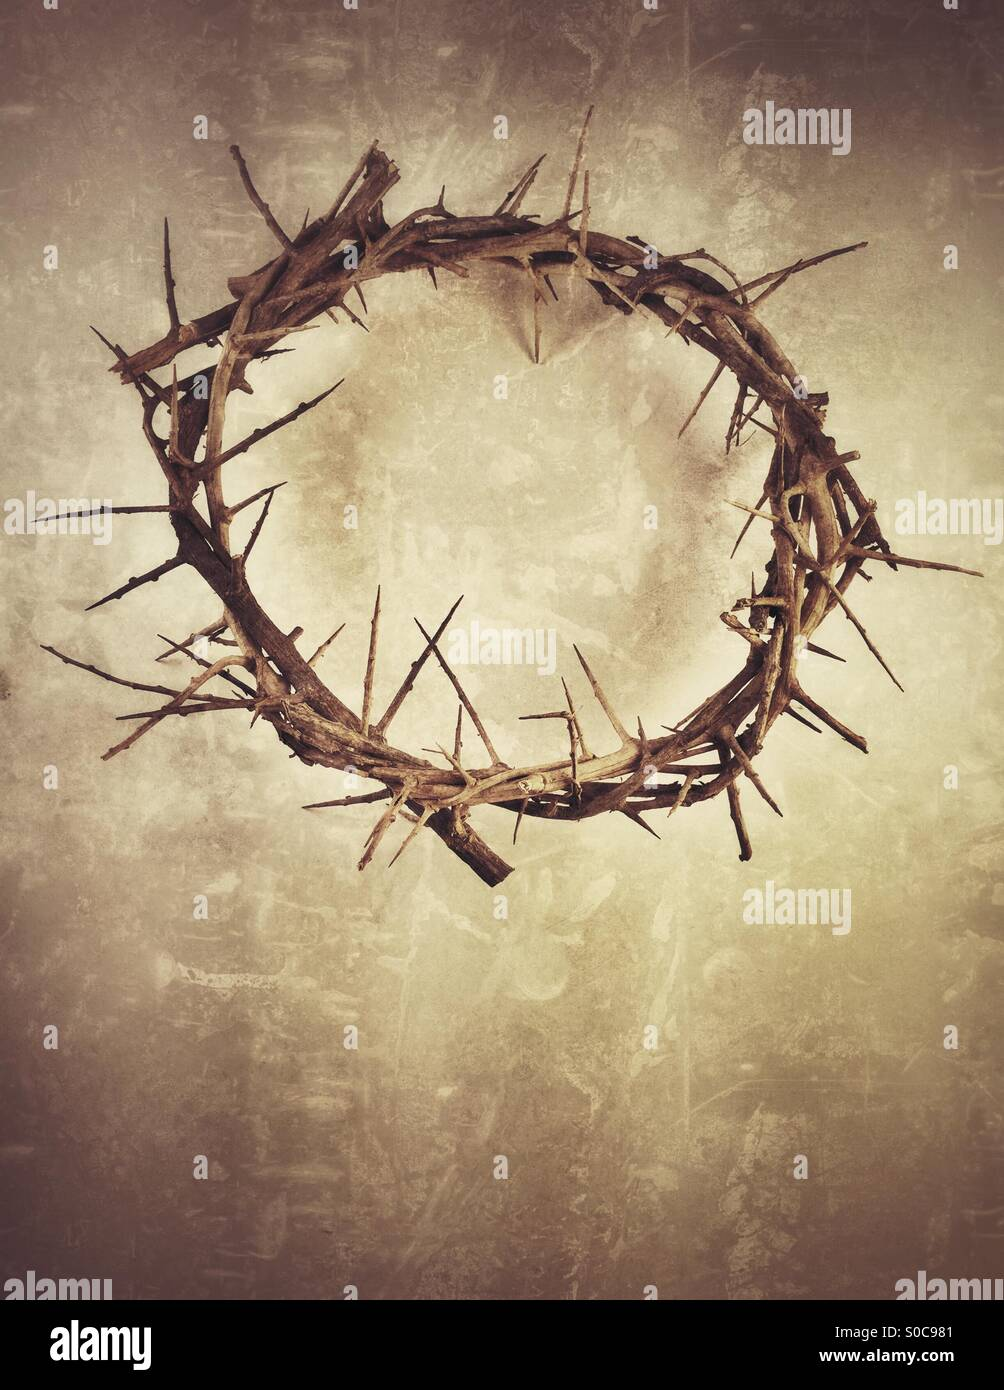 Crown of Thorns - Stock Image